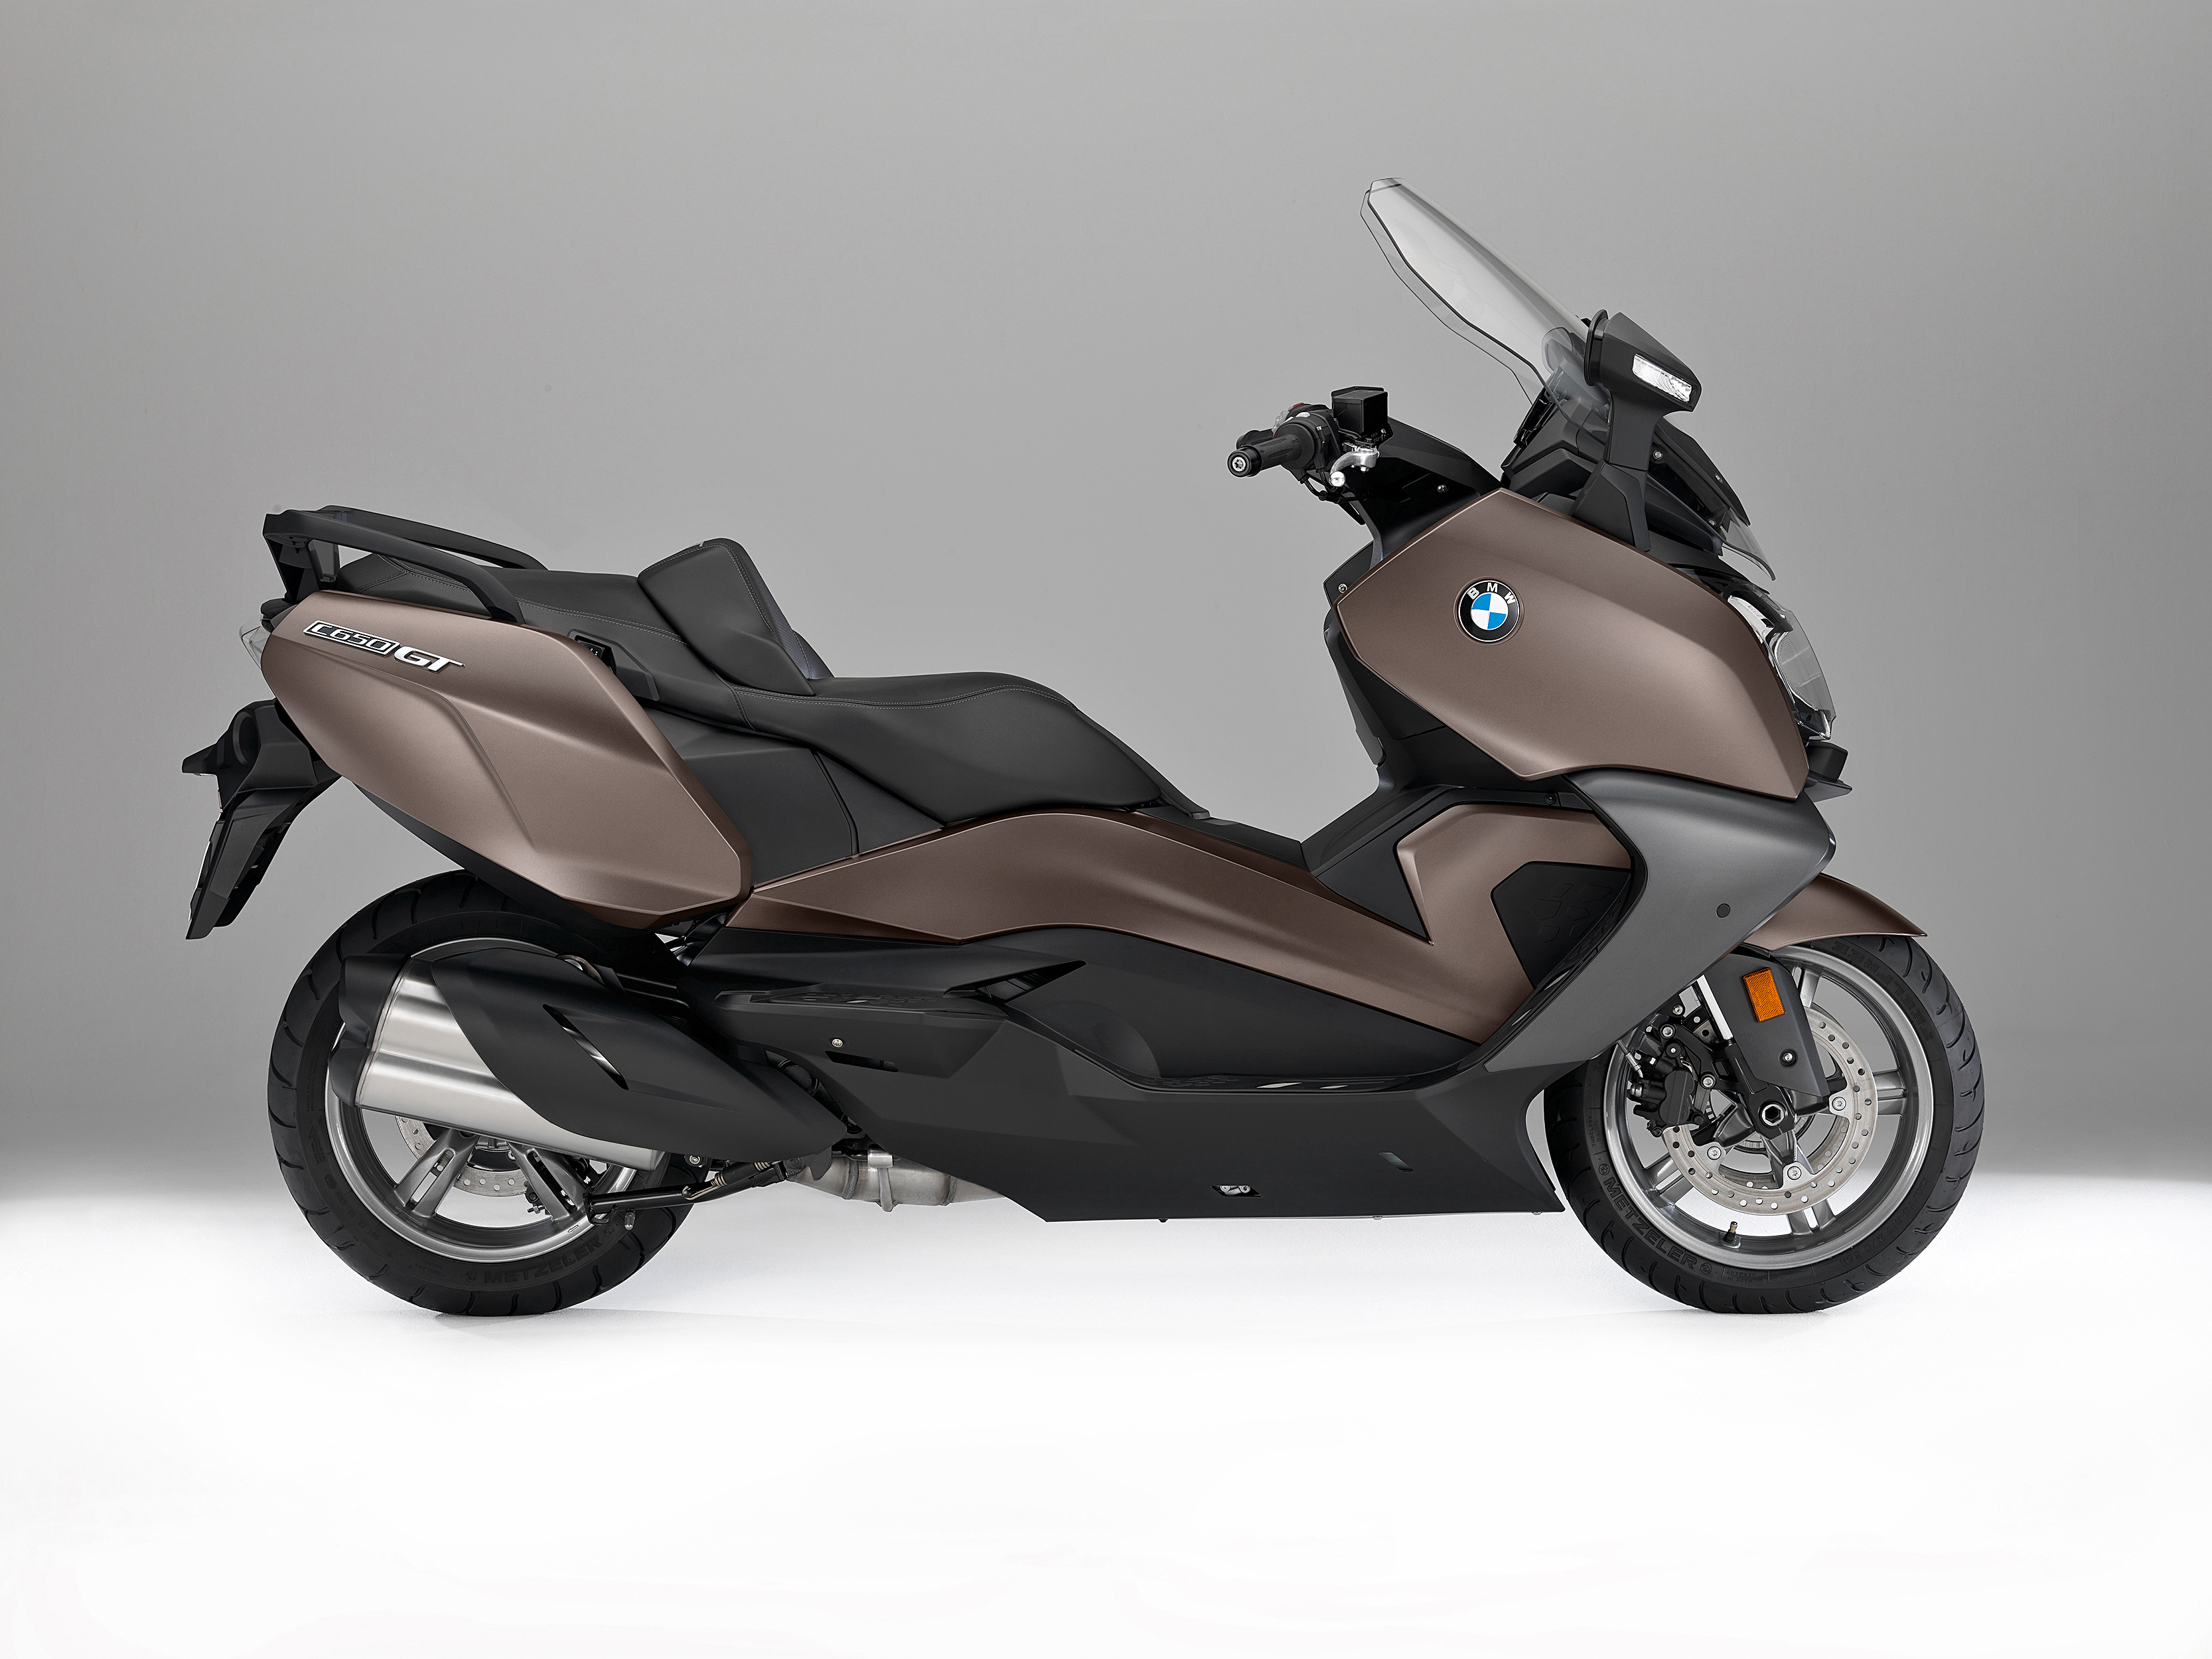 meet schwarzenbauer said second is offering considering sharing a wheelers mulls two scooter growing bmw skirting onweb electric congestion motorcycle congested ride for bloomberg in mulling demand agile cities to